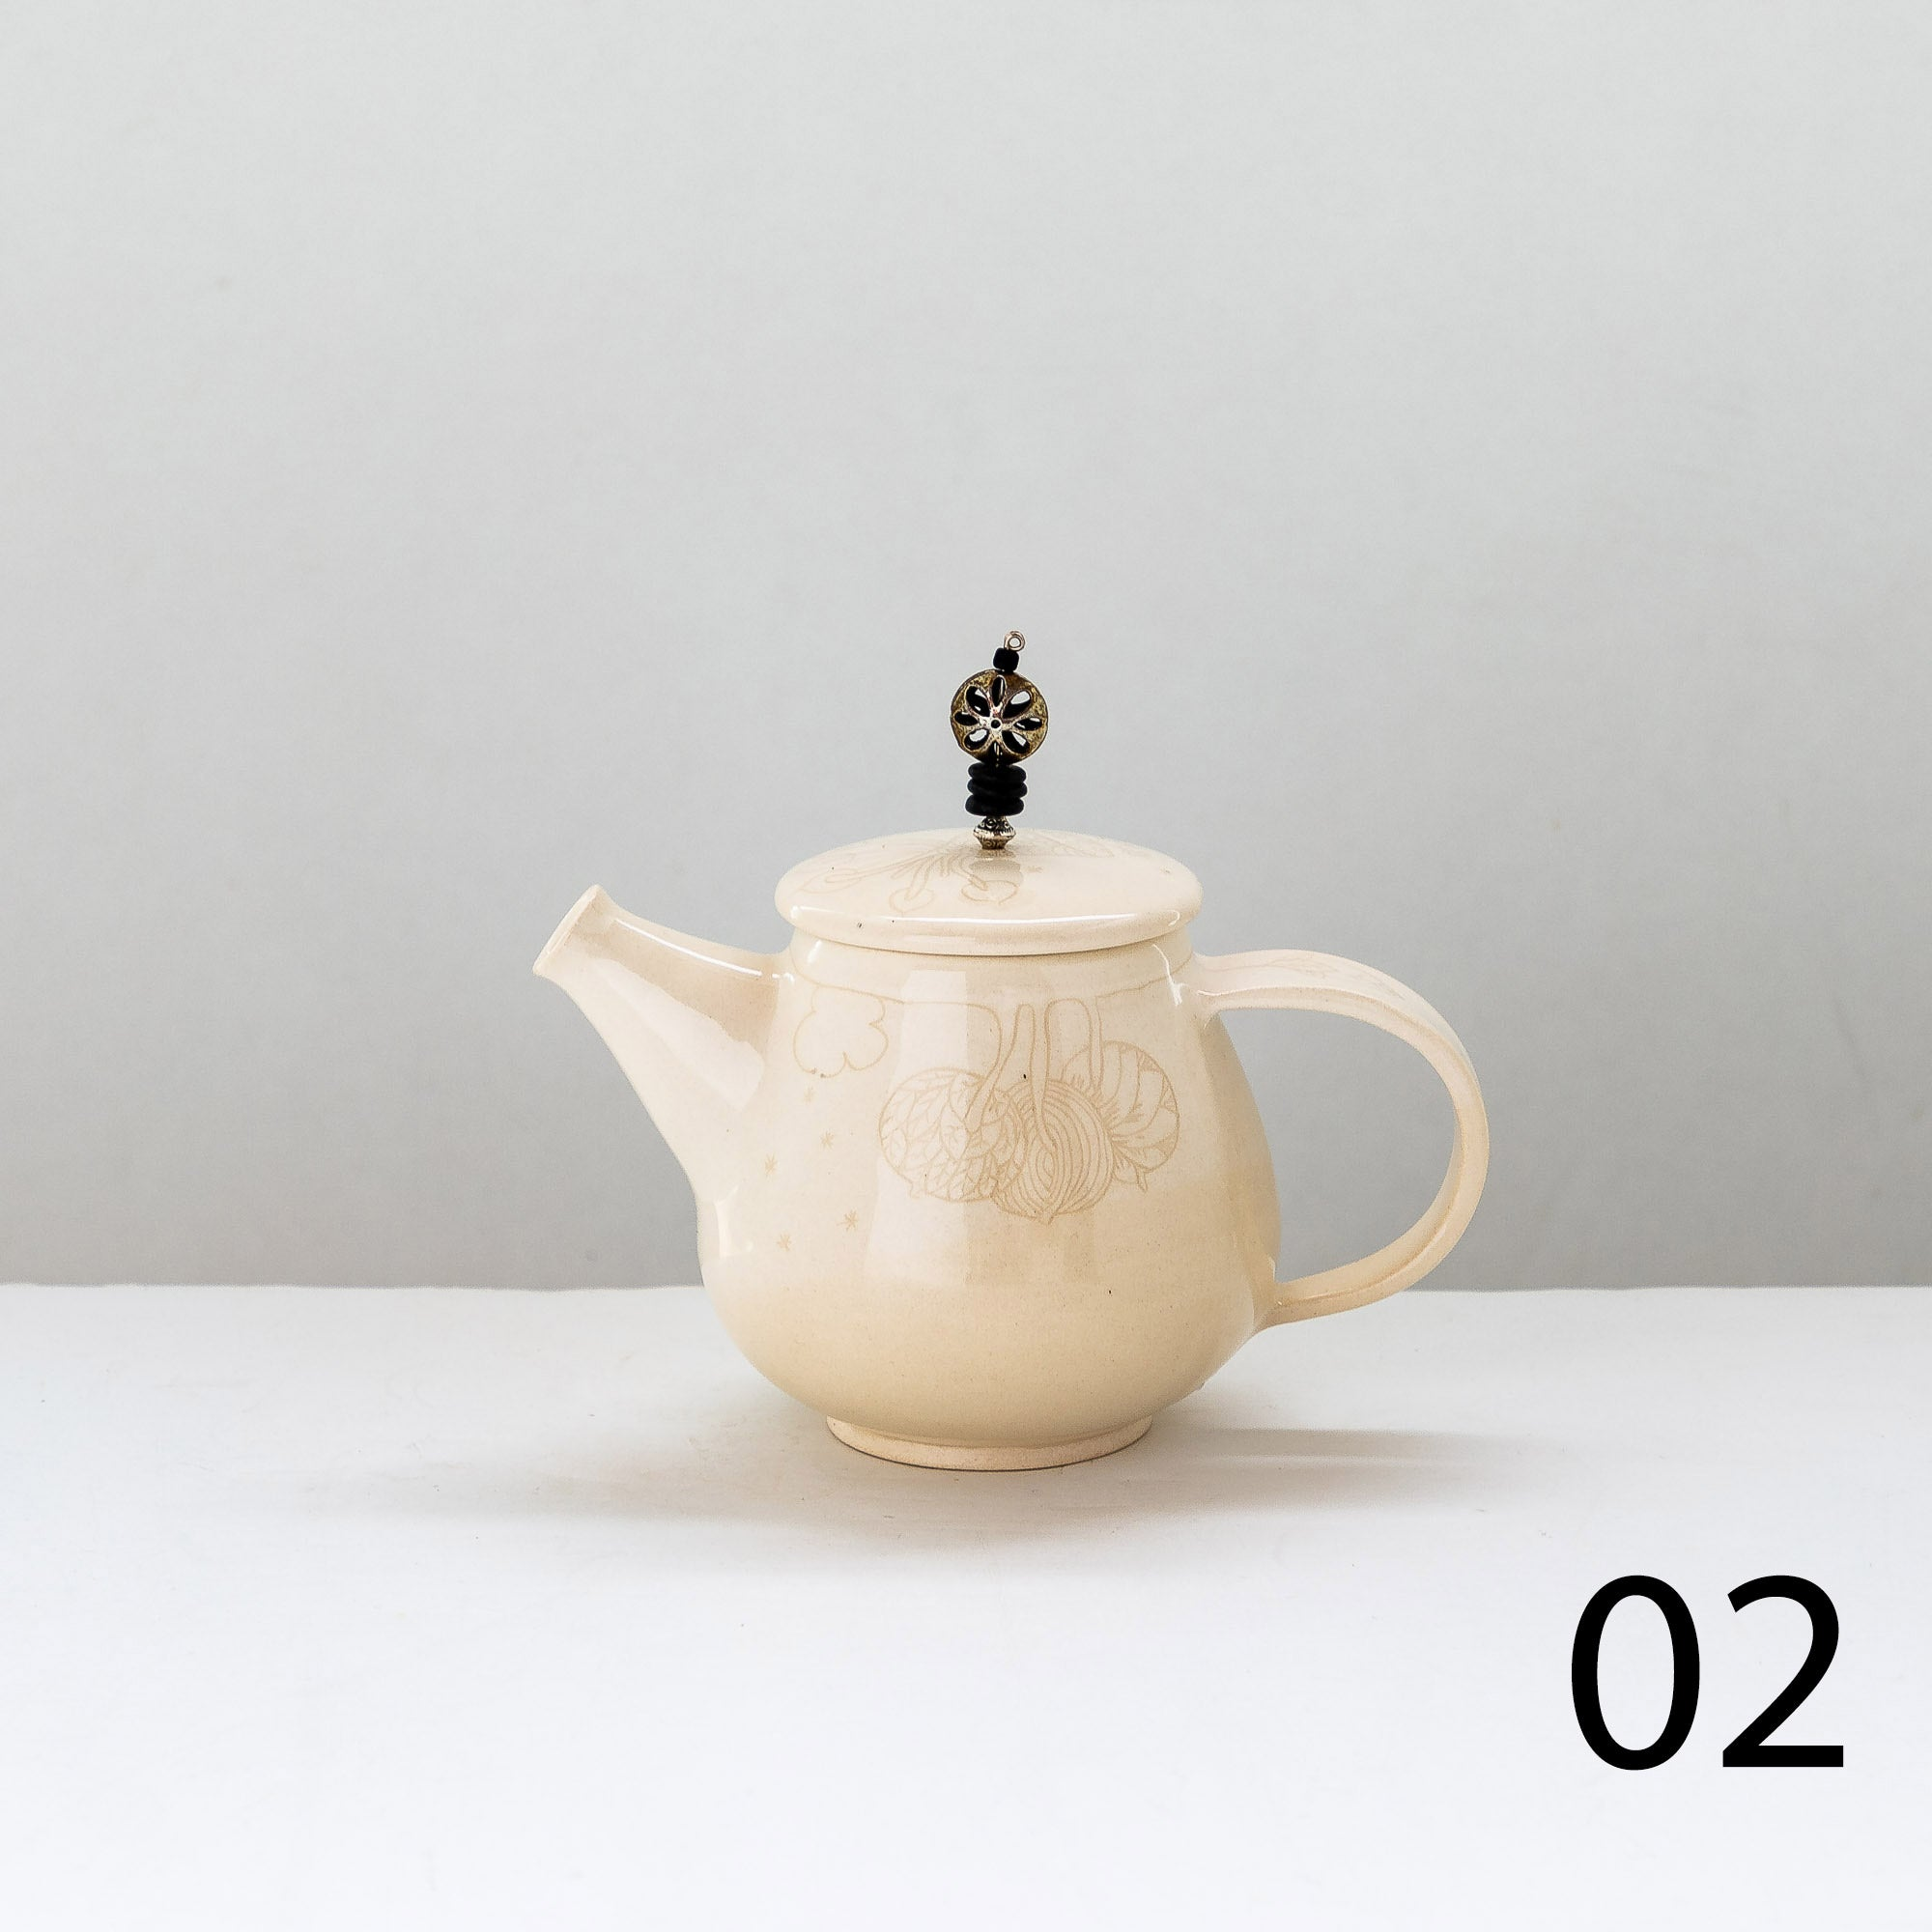 Model 2 - Hand Engraved Earthenware Teapot - Sold by Chic & Basta